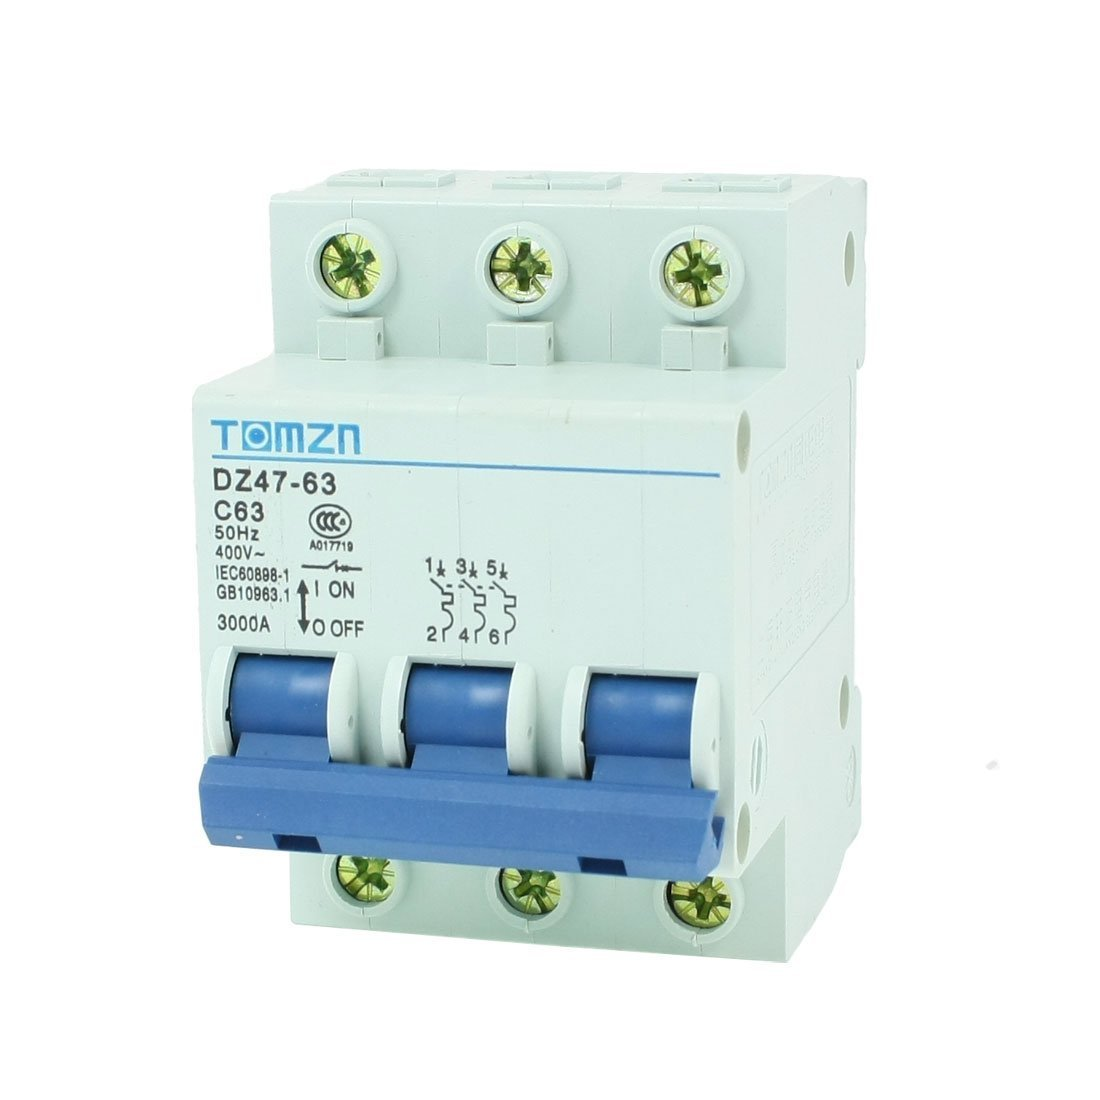 AC 400V 63A 3 Poles 3P Overload Protection MCB Mini Circuit Breaker Sourcingmap a13051300ux0217